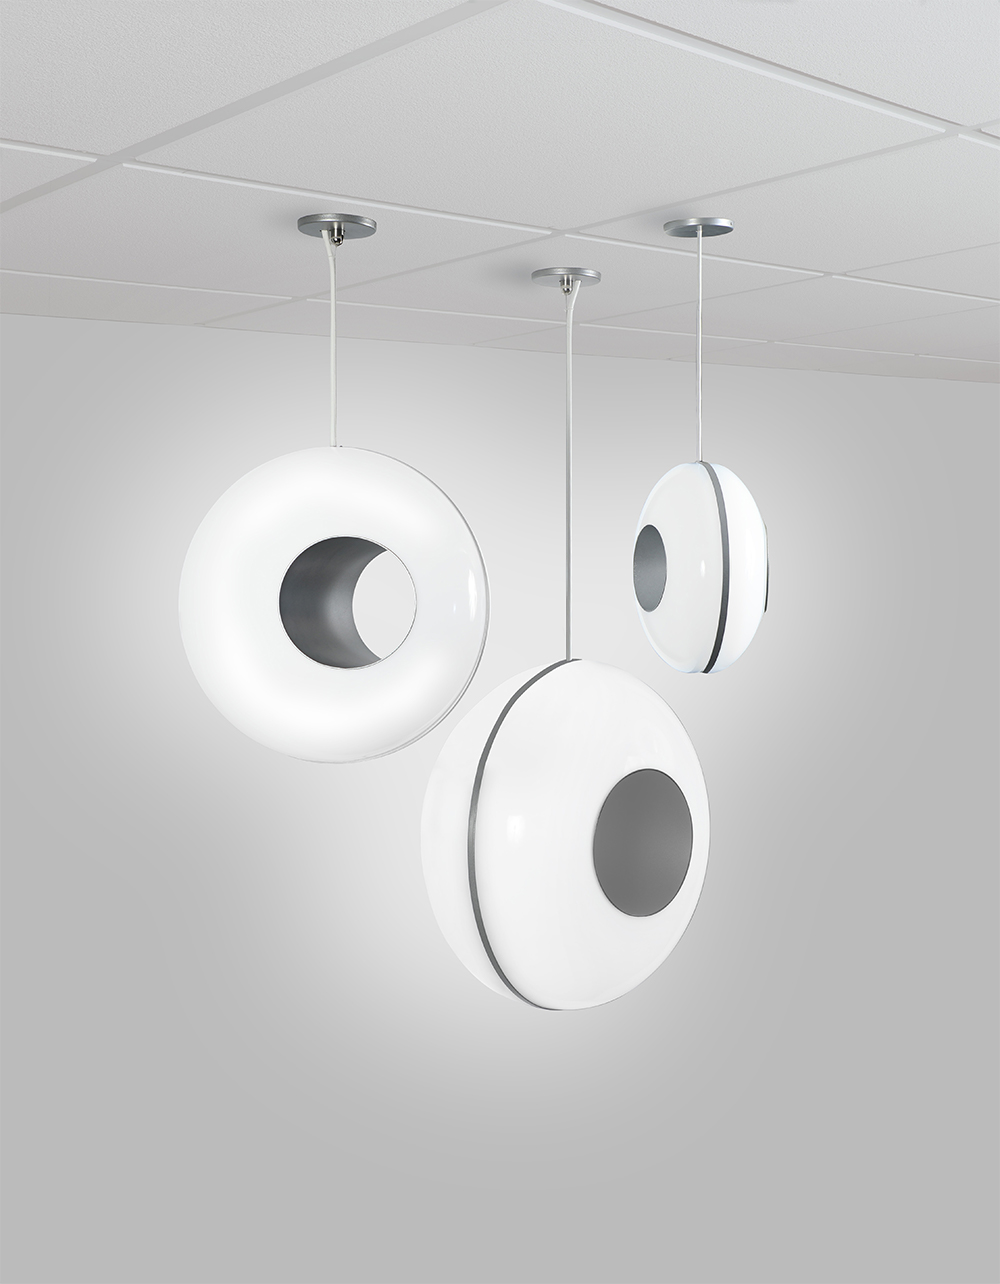 All three sizes of the Peek contemporary pendants, mounted together in a cluster.